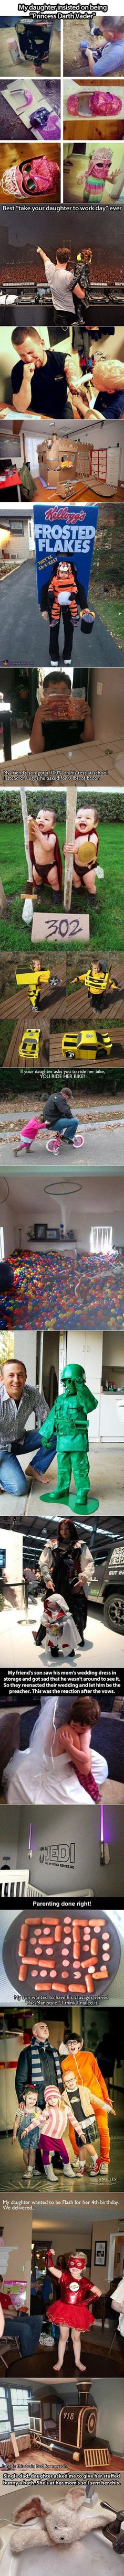 awesome and geeky parents who are doing it right